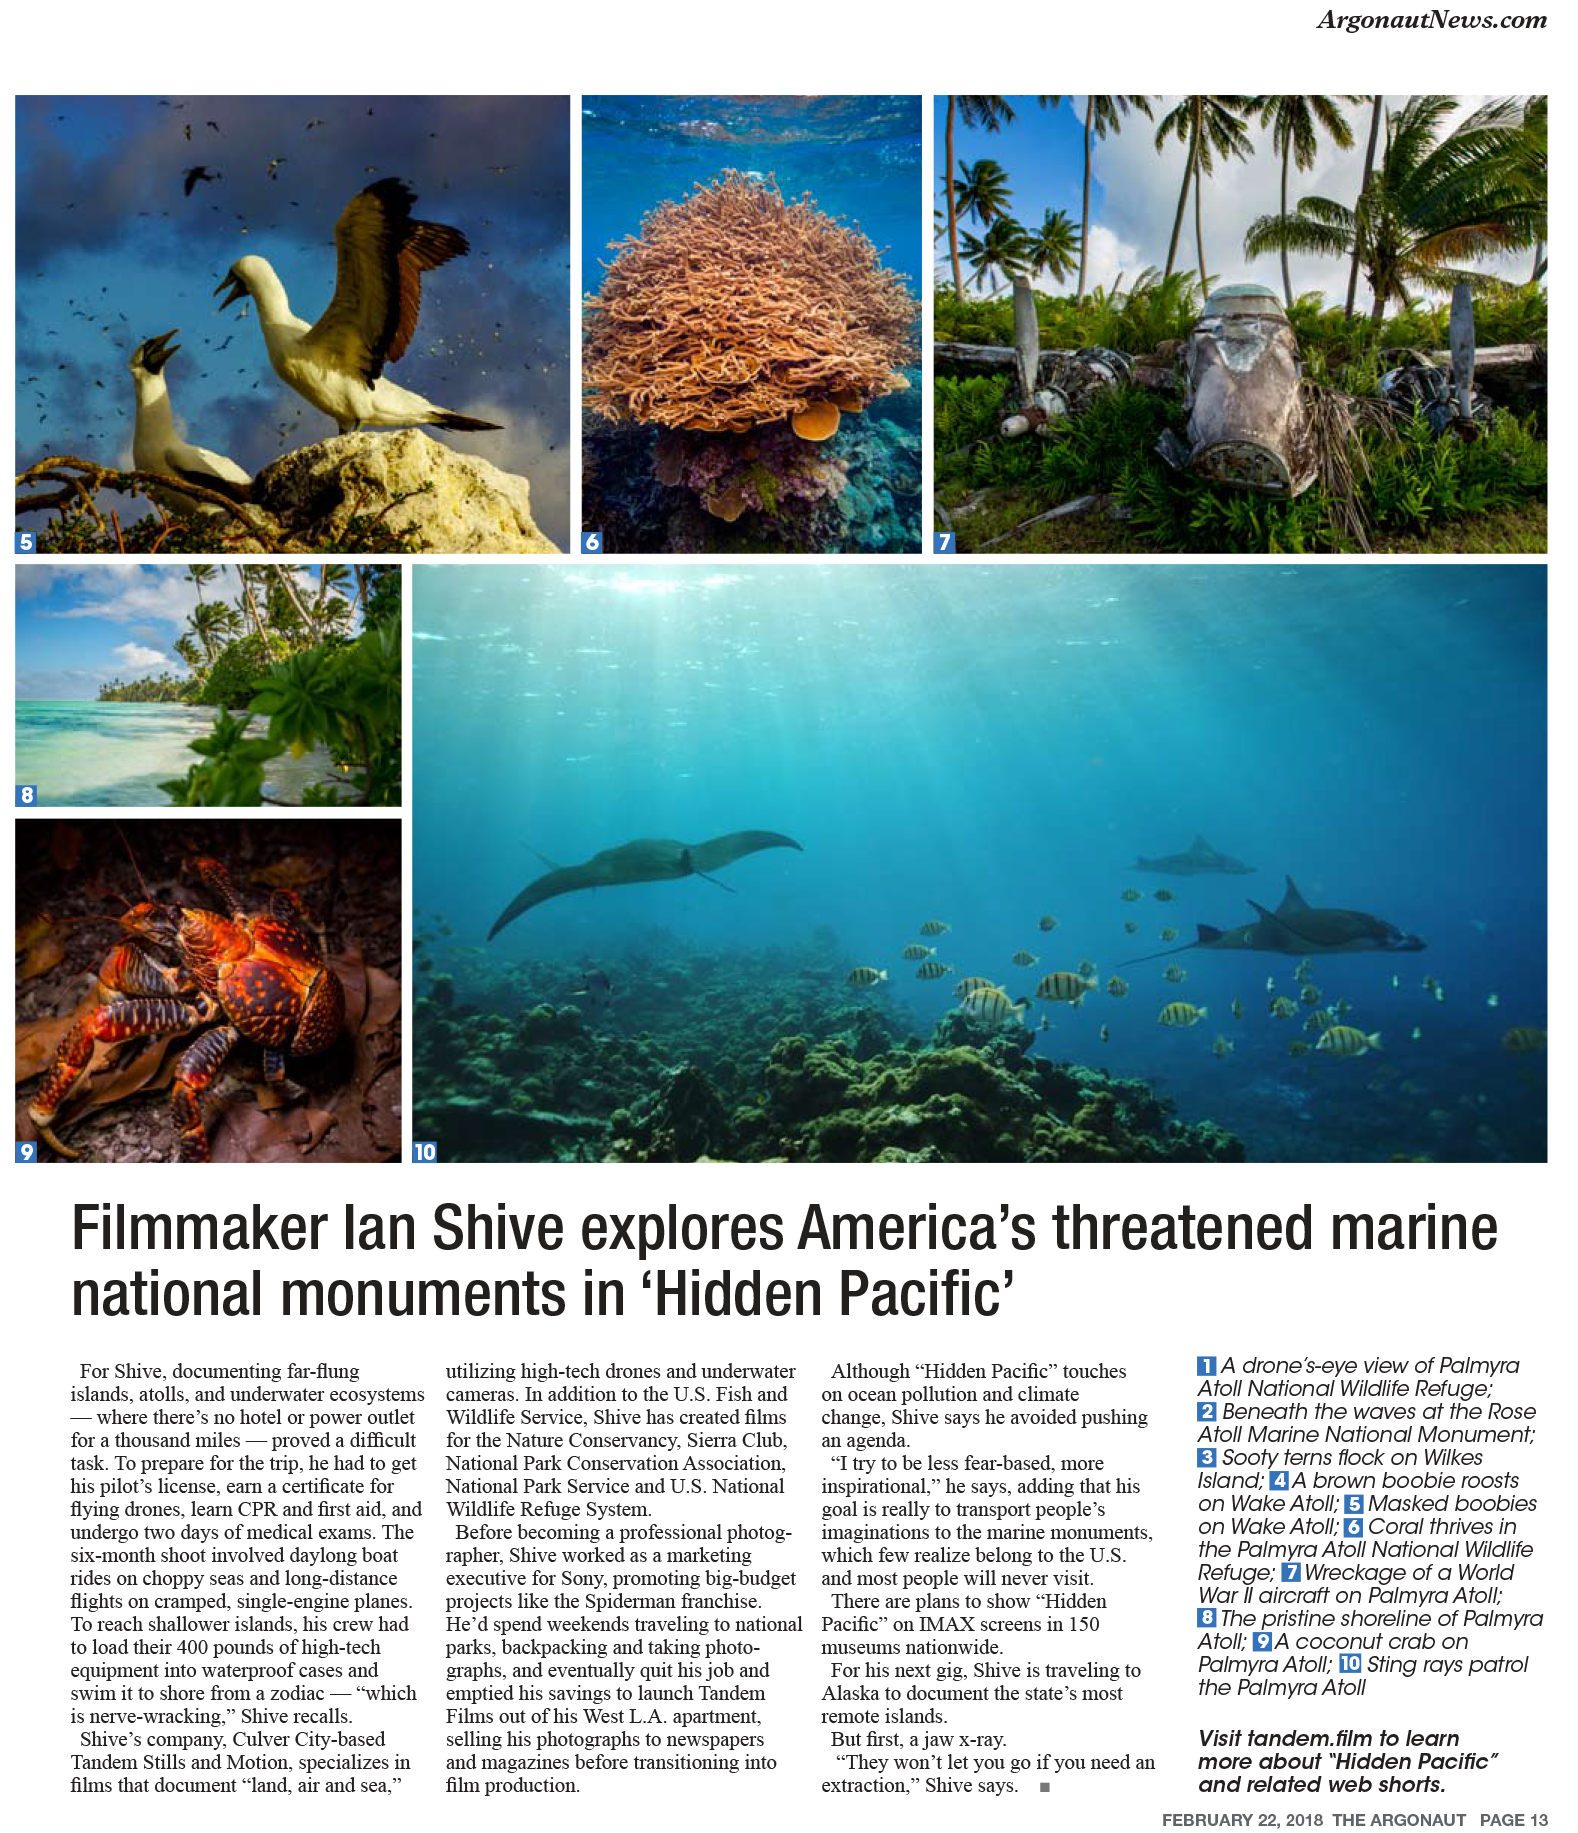 Spring 2018 coverage of the marine national monuments in the Argonaut weekly newspaper (Los Angeles).